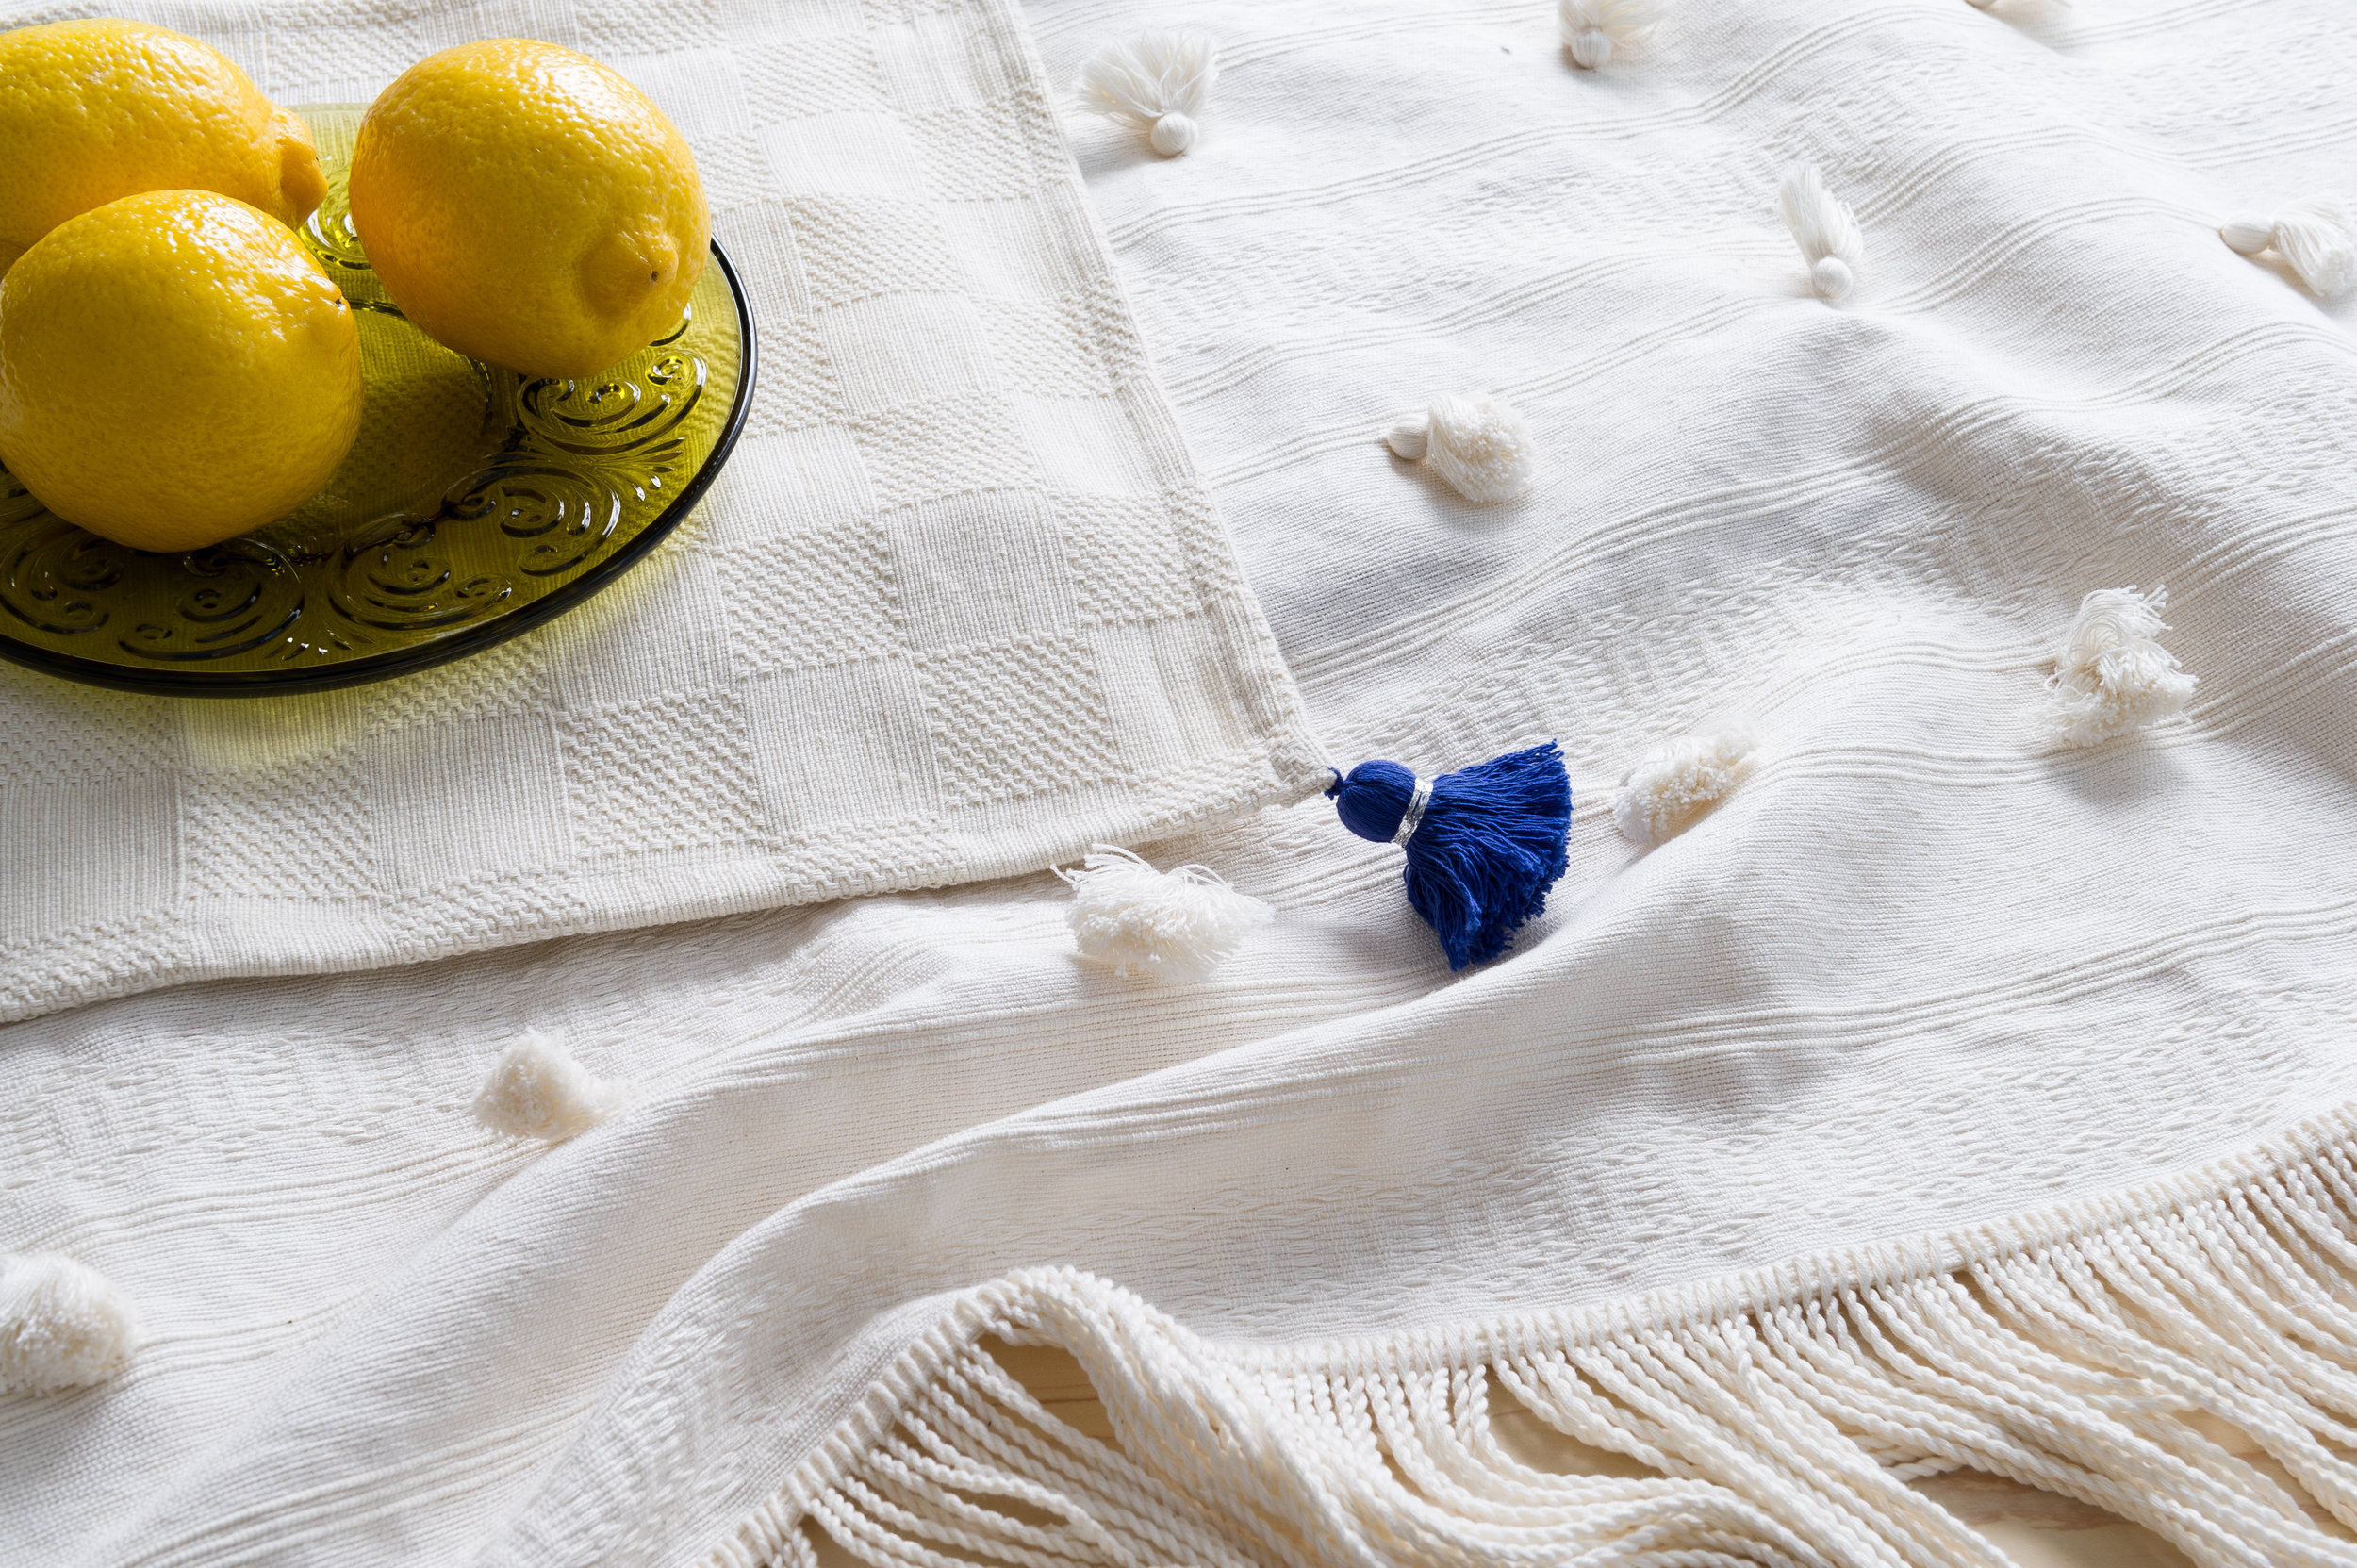 100% organic cotton Tassel Napkin on top of the Tassel Blanket made in by our artisan partners in Mexico.